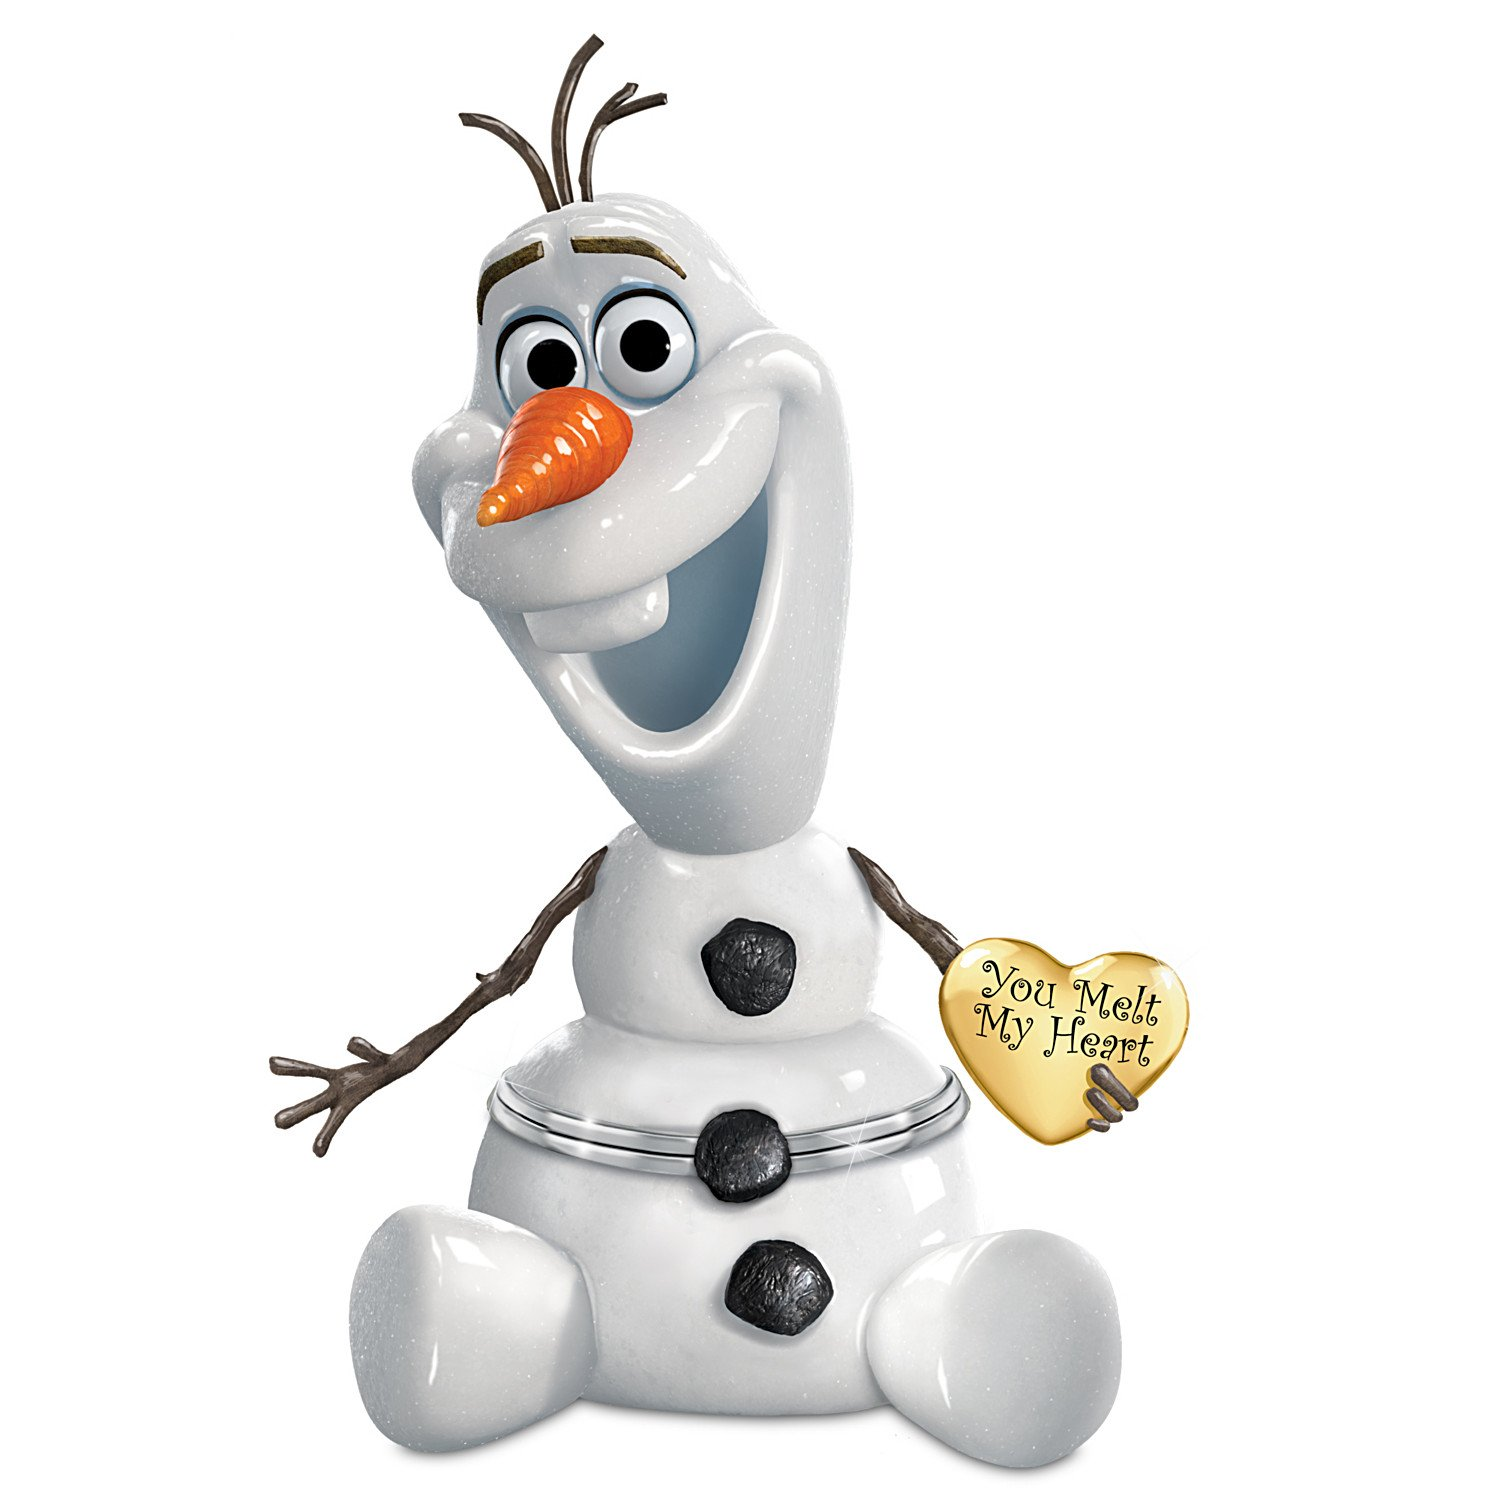 【格安SALEスタート】 Disney FROZEN Olaf B00UGH9VQQ Porcelain Music Box: Exchange Granddaughter, Box: You Melt My Heart by The Bradford Exchange B00UGH9VQQ, ROOTWEB:e4085976 --- arcego.dominiotemporario.com